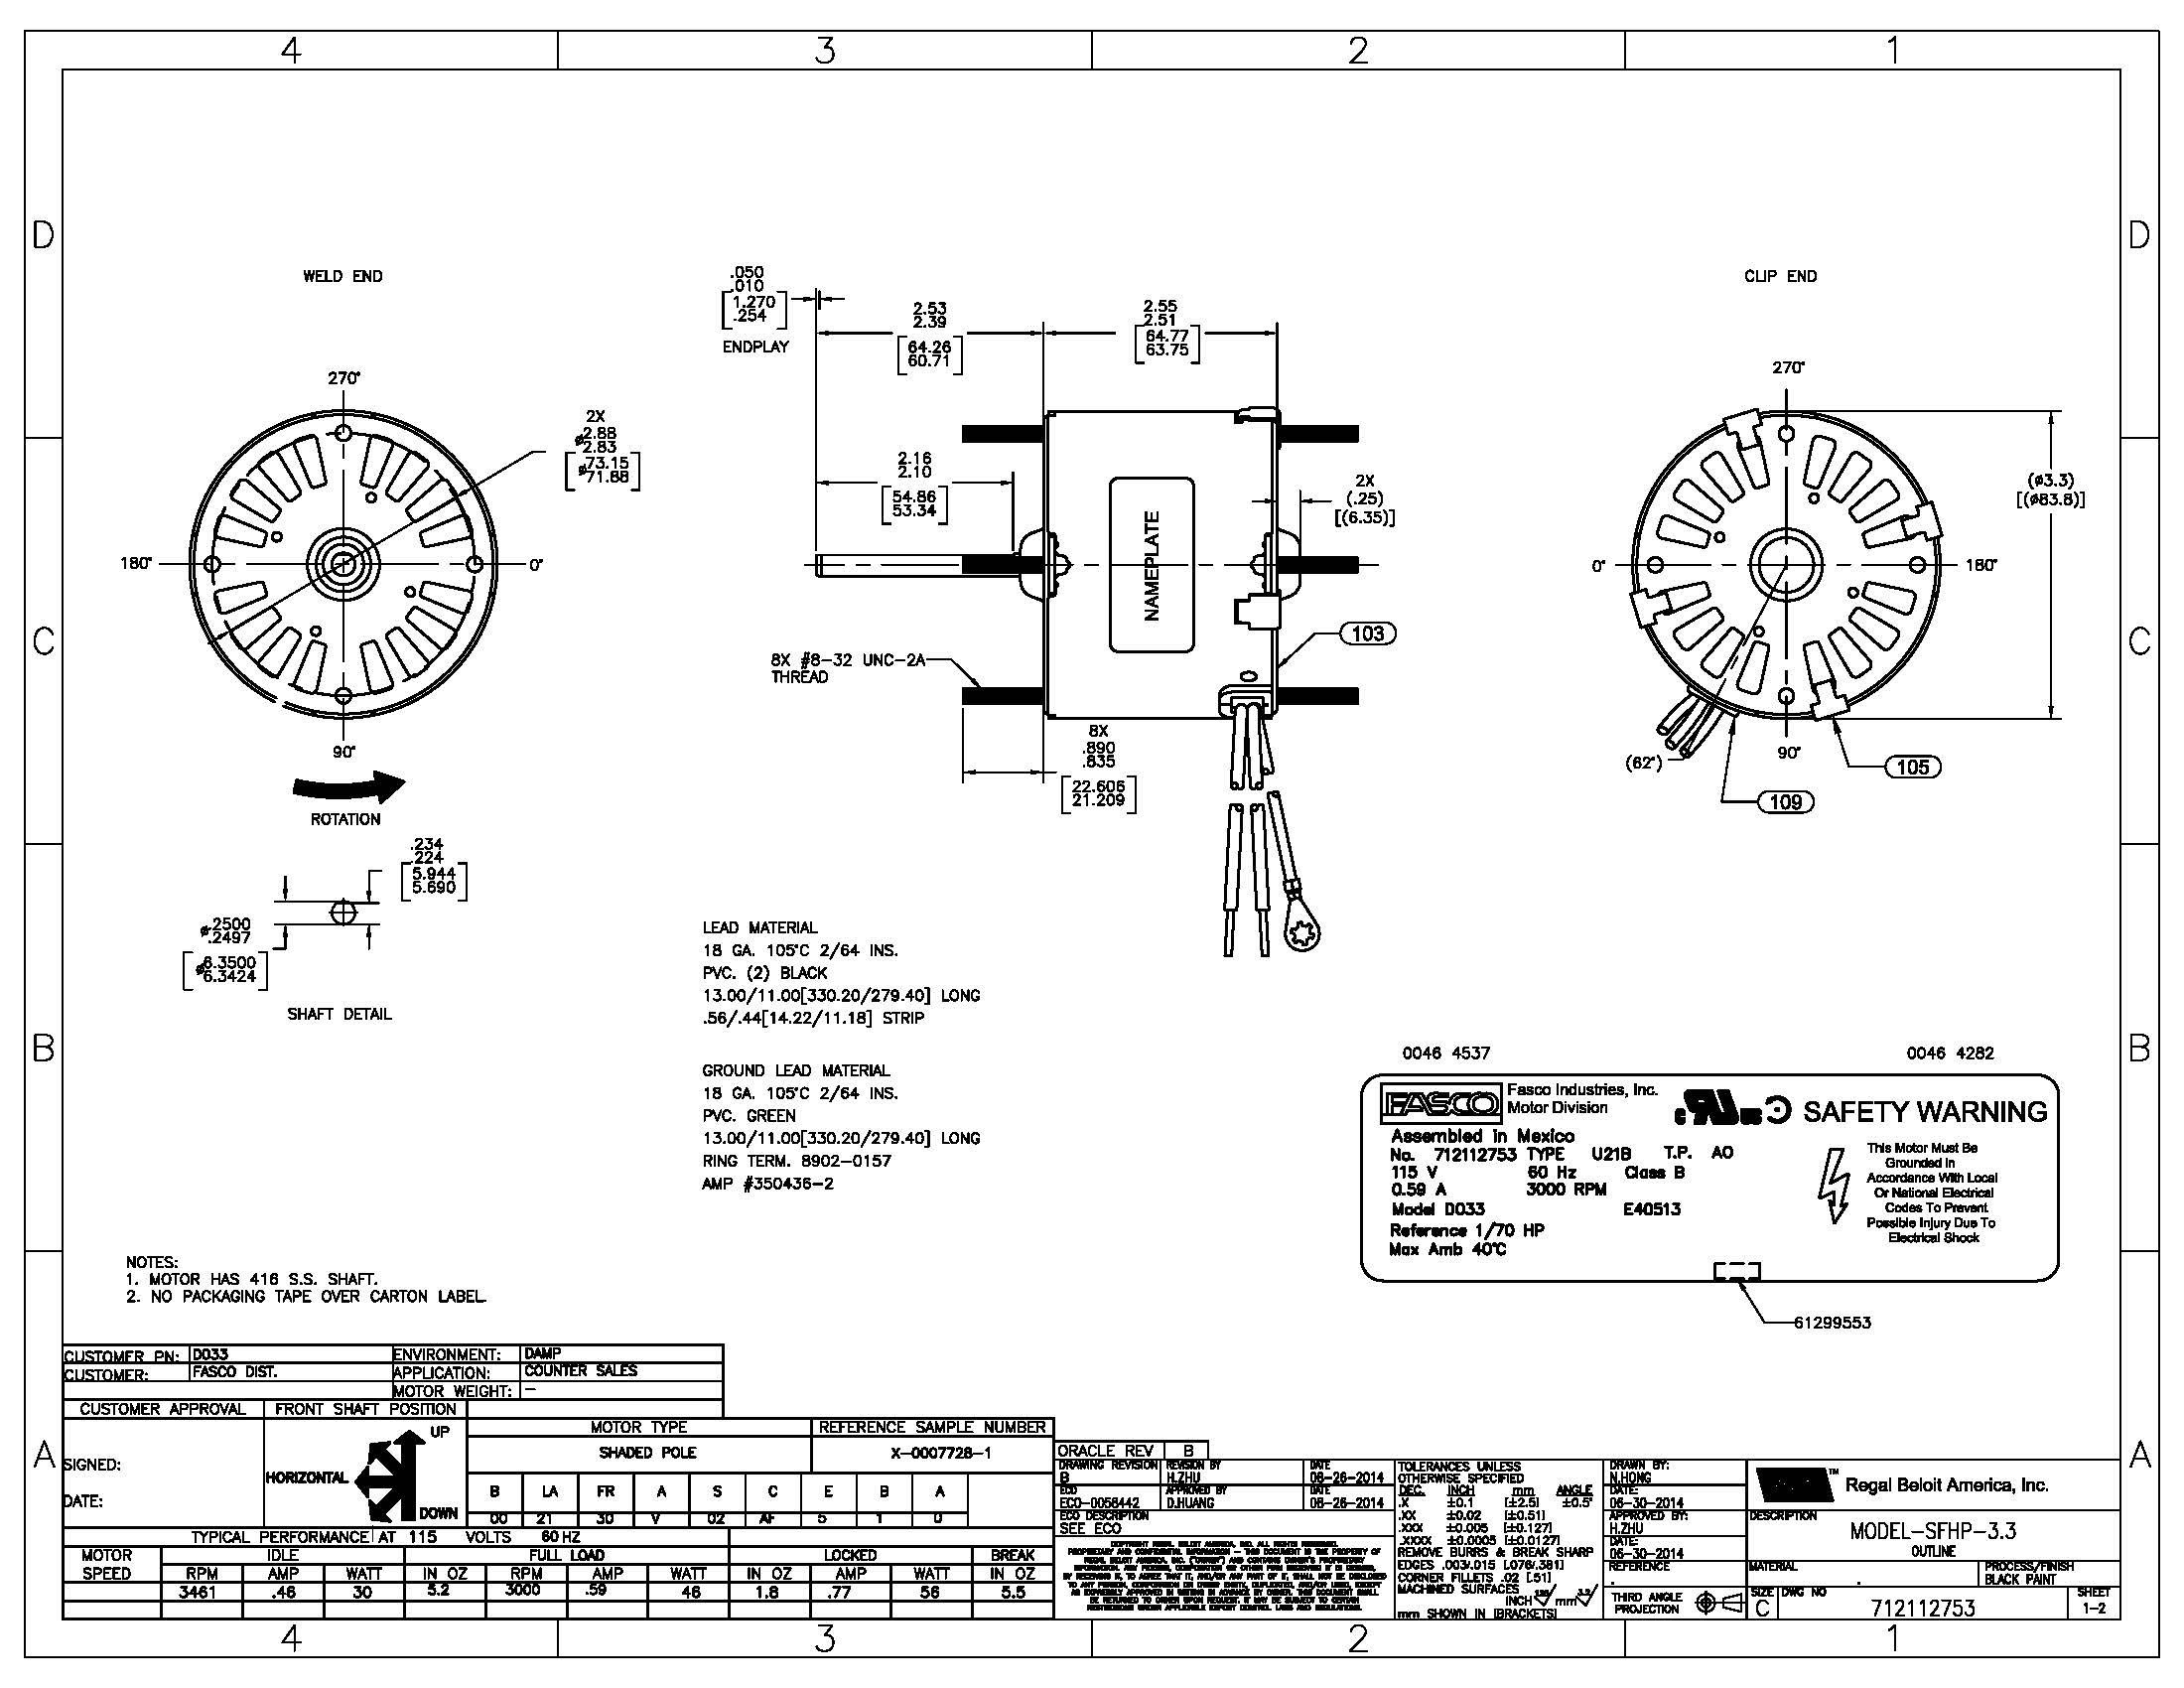 Fasco Fan Motor Wiring Diagram - Hvac Motor Wiring Diagram New Wiring Diagram for Fasco Blower Motor Fresh Wiring Diagram Shaded 20n